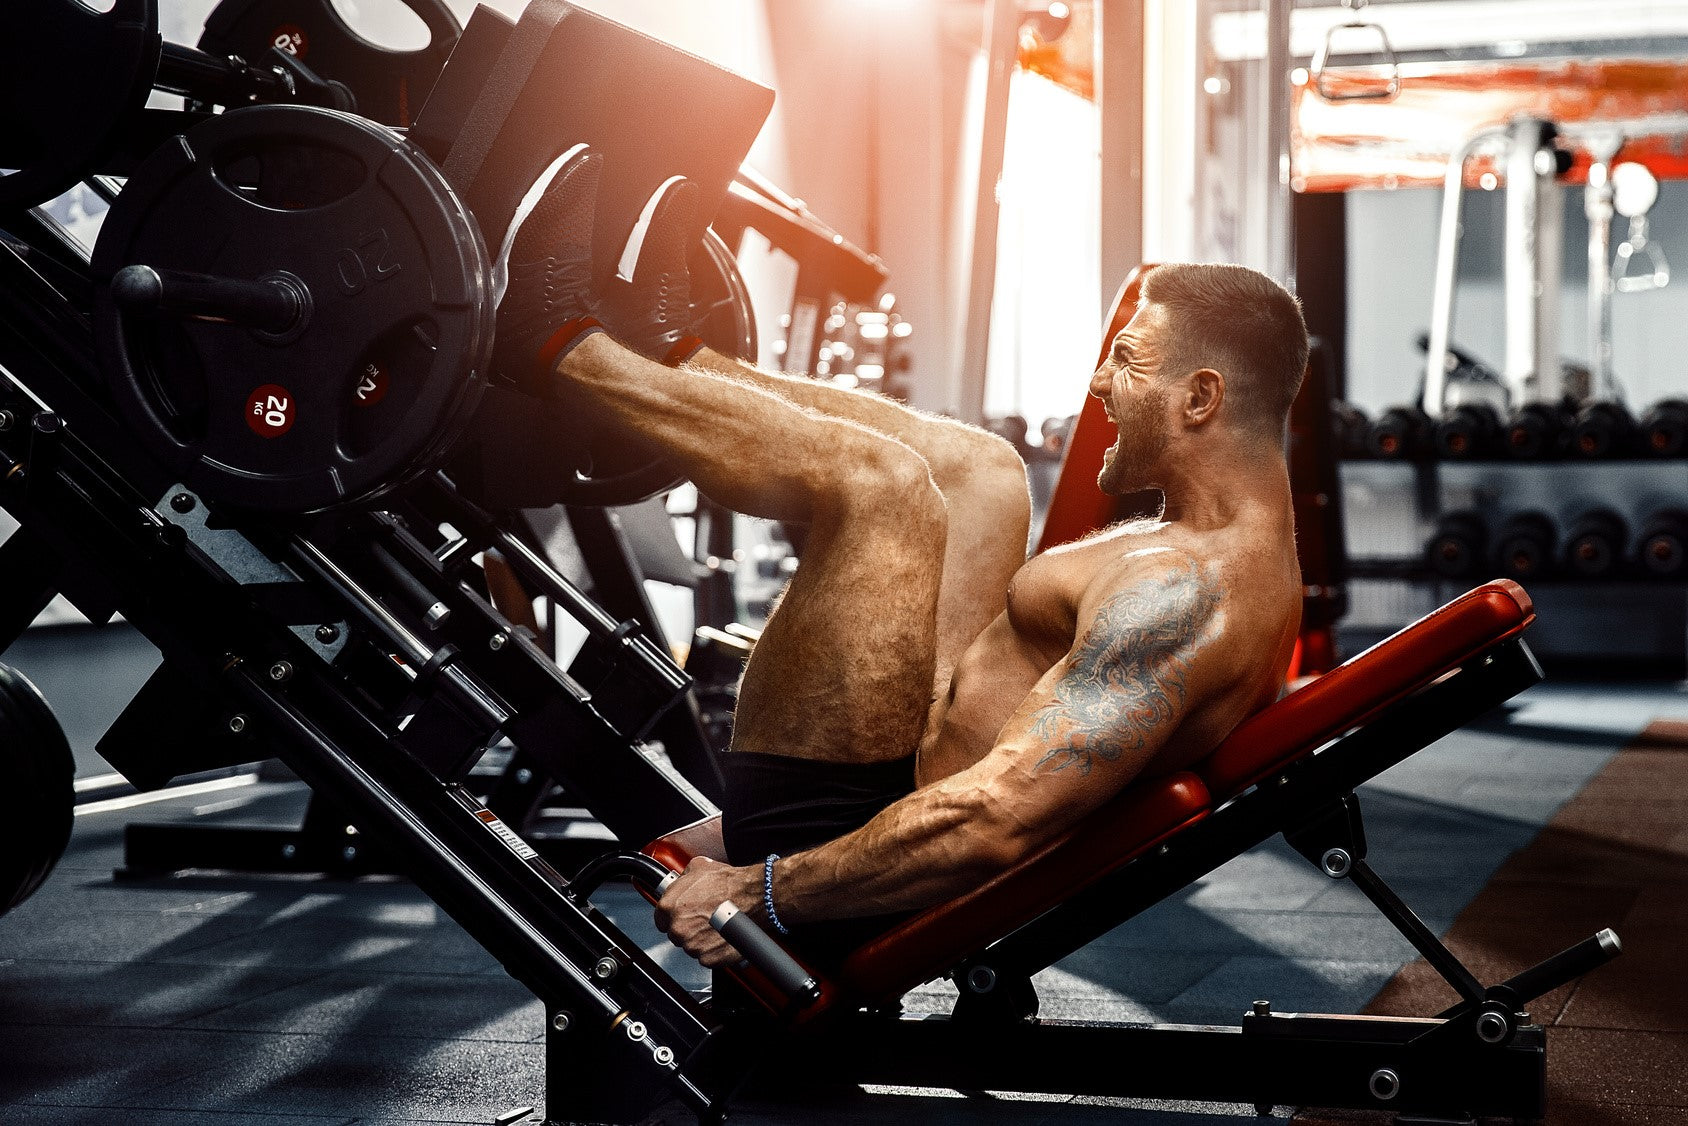 Nootropics for bodybuilding can help boost the concentration that is needed for success.